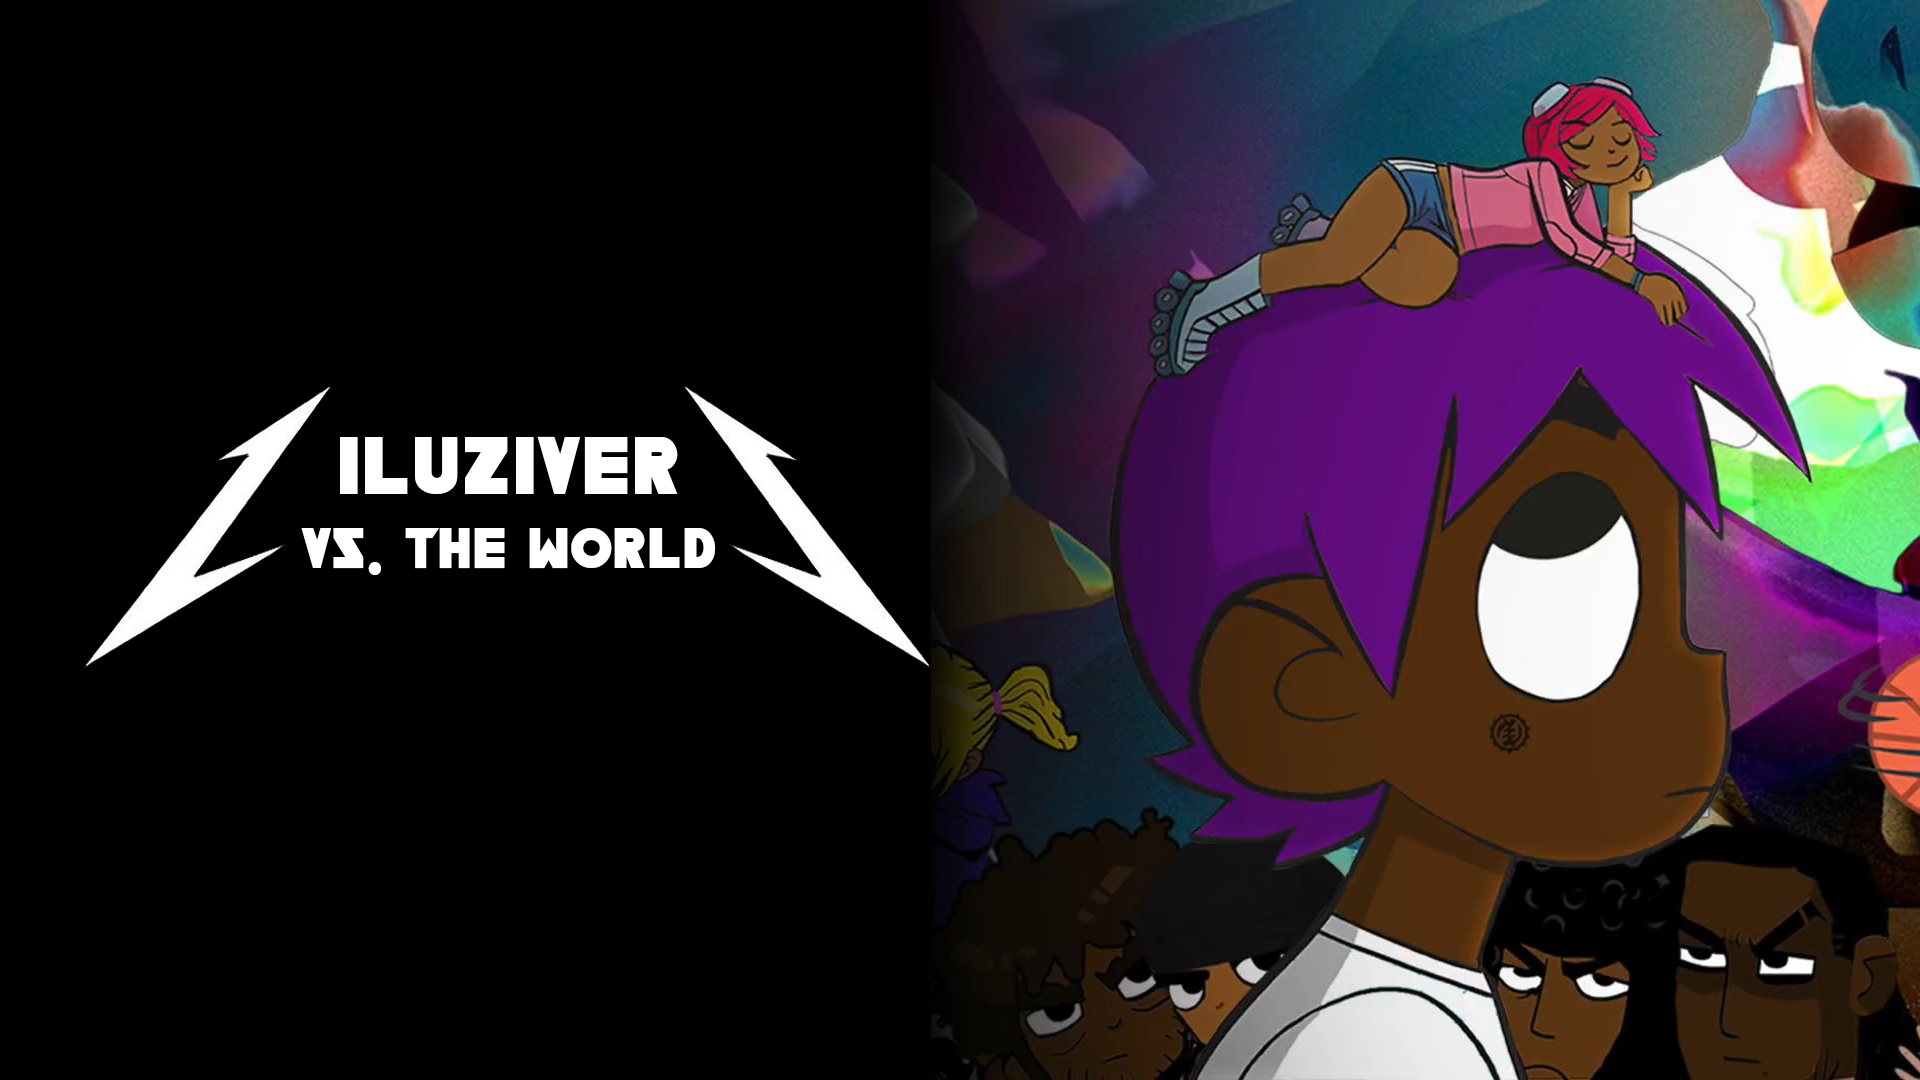 Lil Uzi Vert Vs The World 2 Wallpapers Top Free Lil Uzi Vert Vs The World 2 Backgrounds Wallpaperaccess Lil uzi vert & 21 savage. lil uzi vert vs the world 2 wallpapers